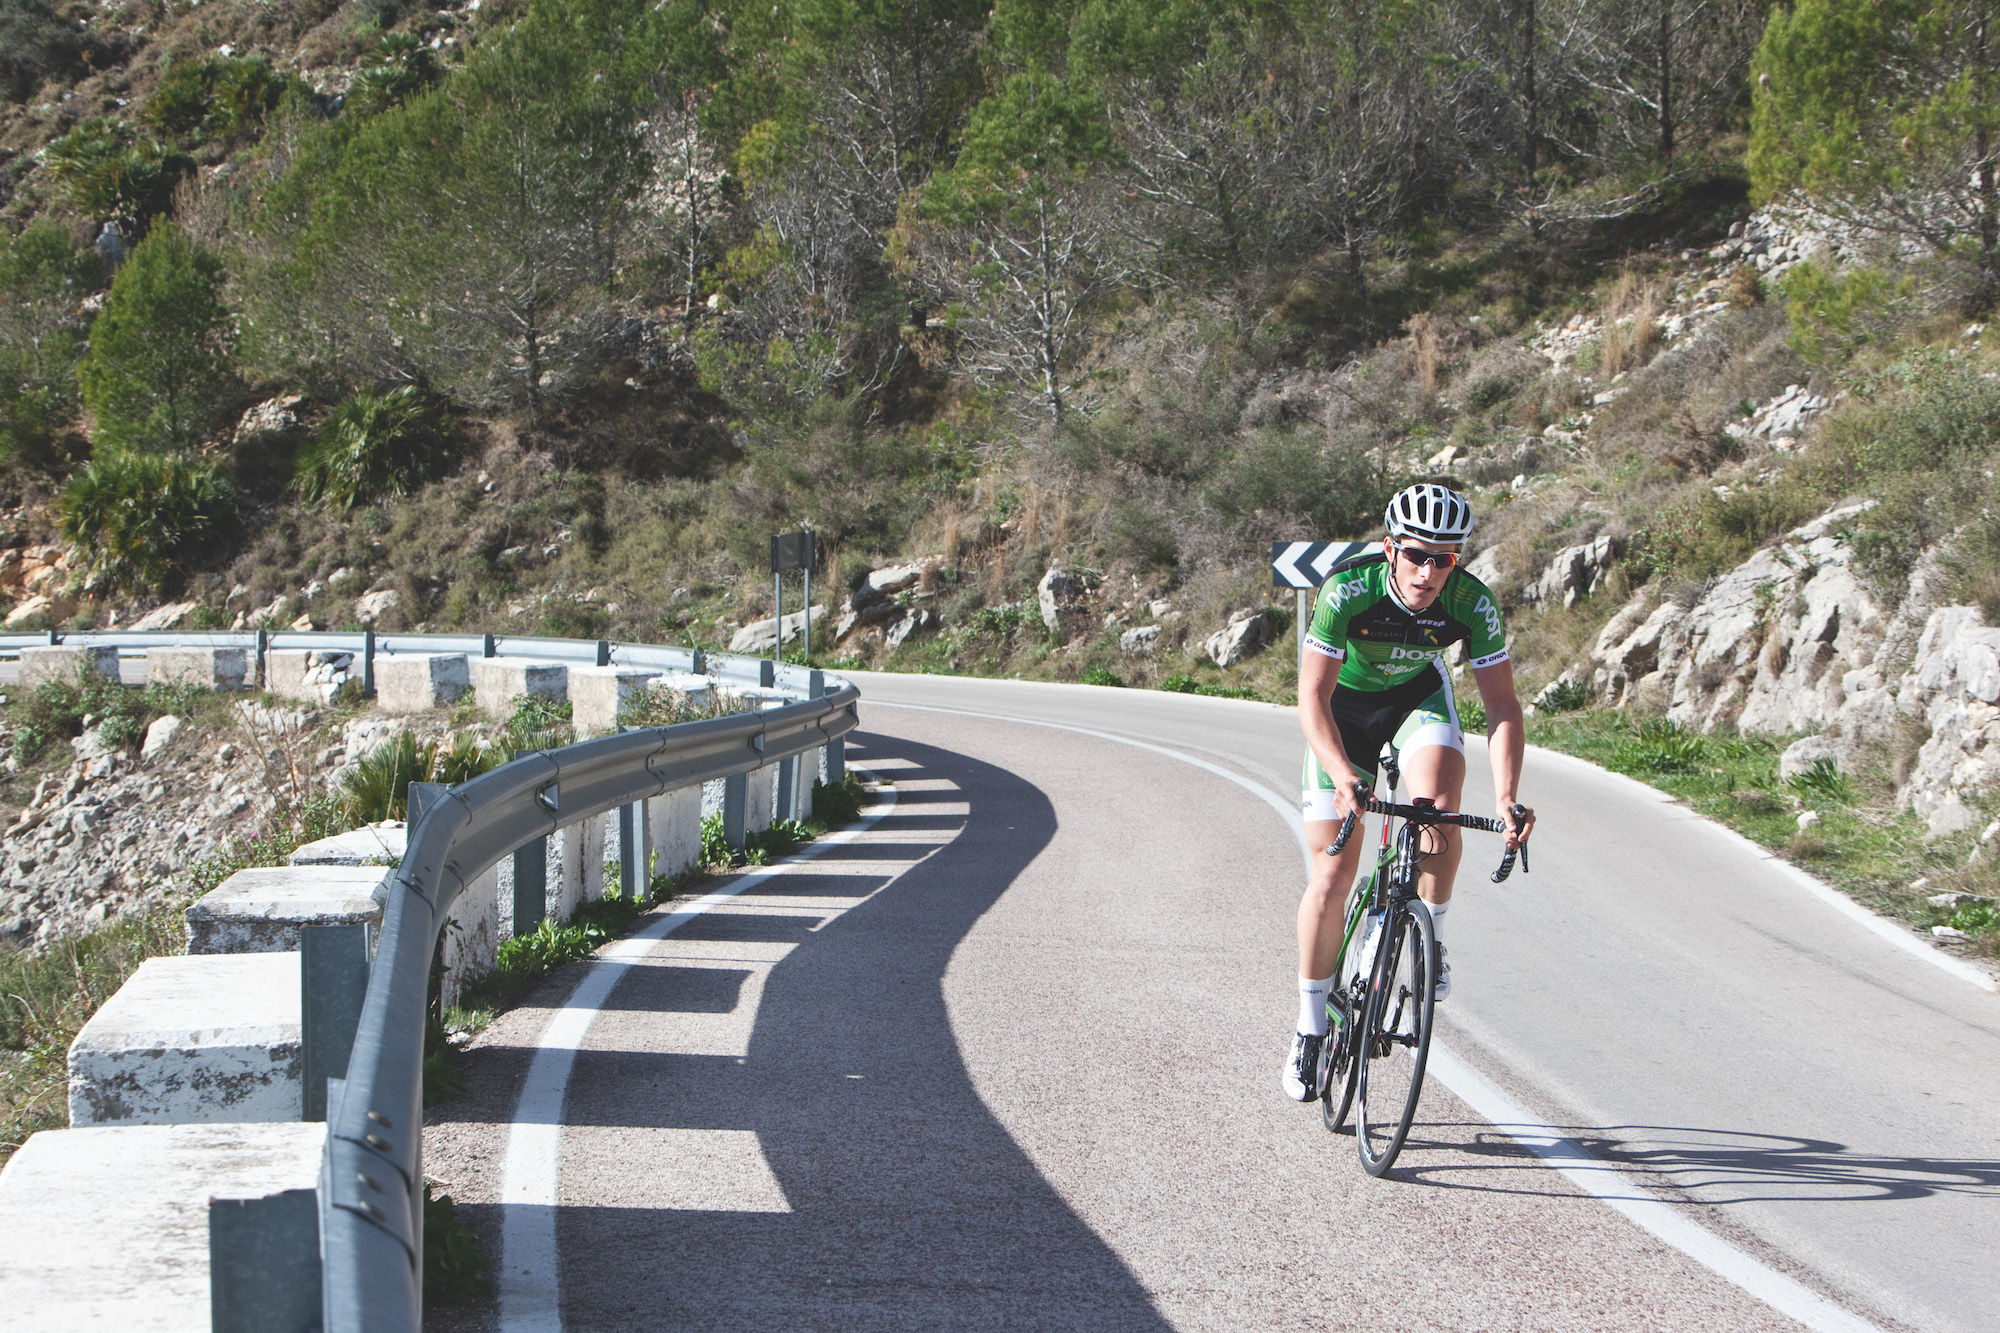 European riding adventures in Portugal, Spain and Italy for the winter months